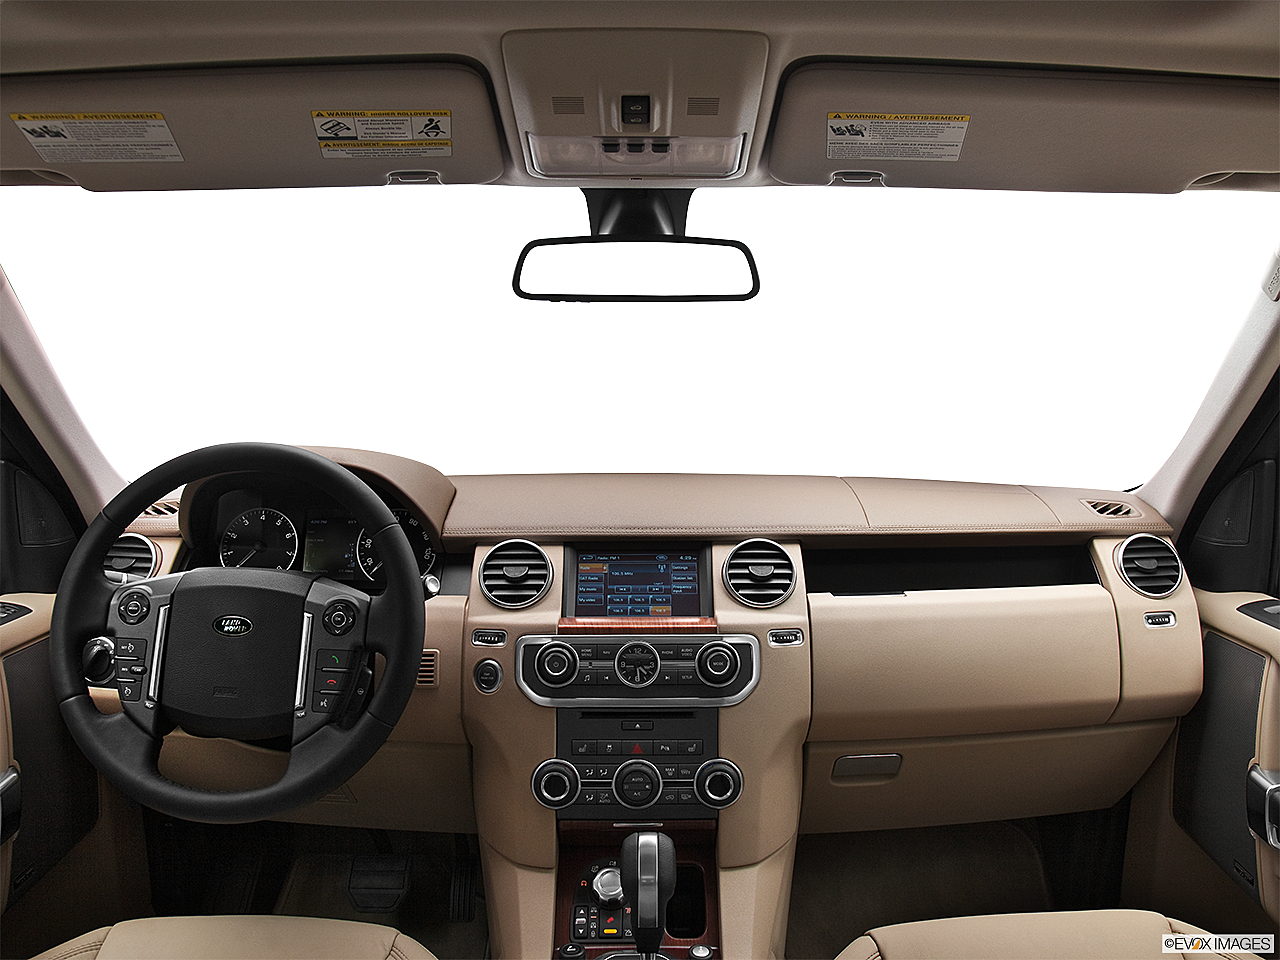 2012 Land Rover LR4, Centered Wide Dash Shot